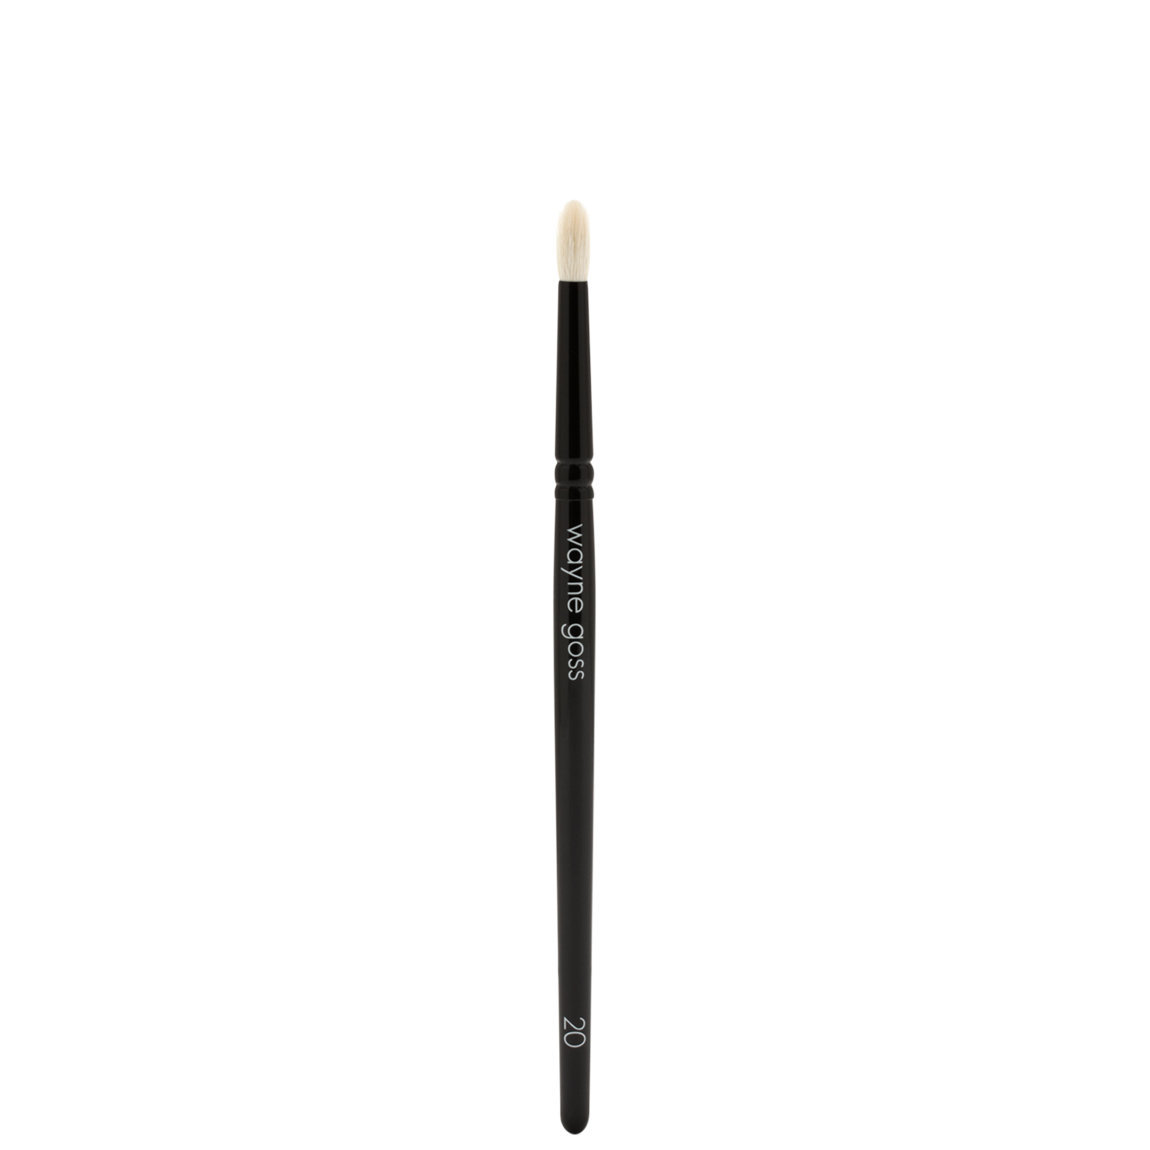 Wayne Goss Brush 20 Eye Shadow Smudging Brush alternative view 1.